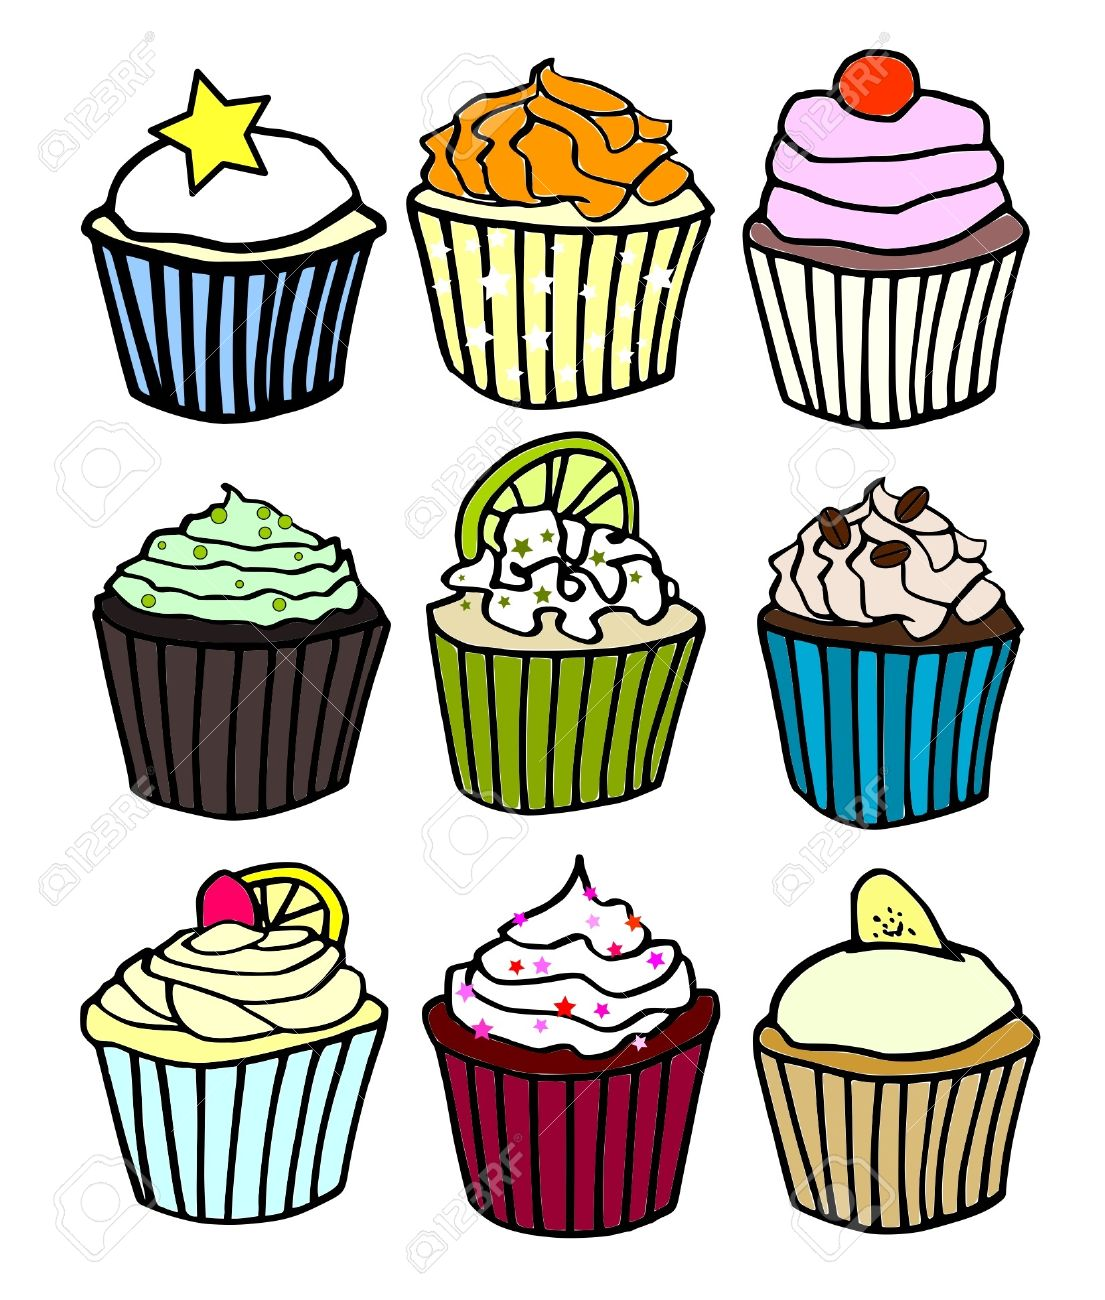 Nine Cupcake Flavors Royalty Free Cliparts, Vectors, And Stock.